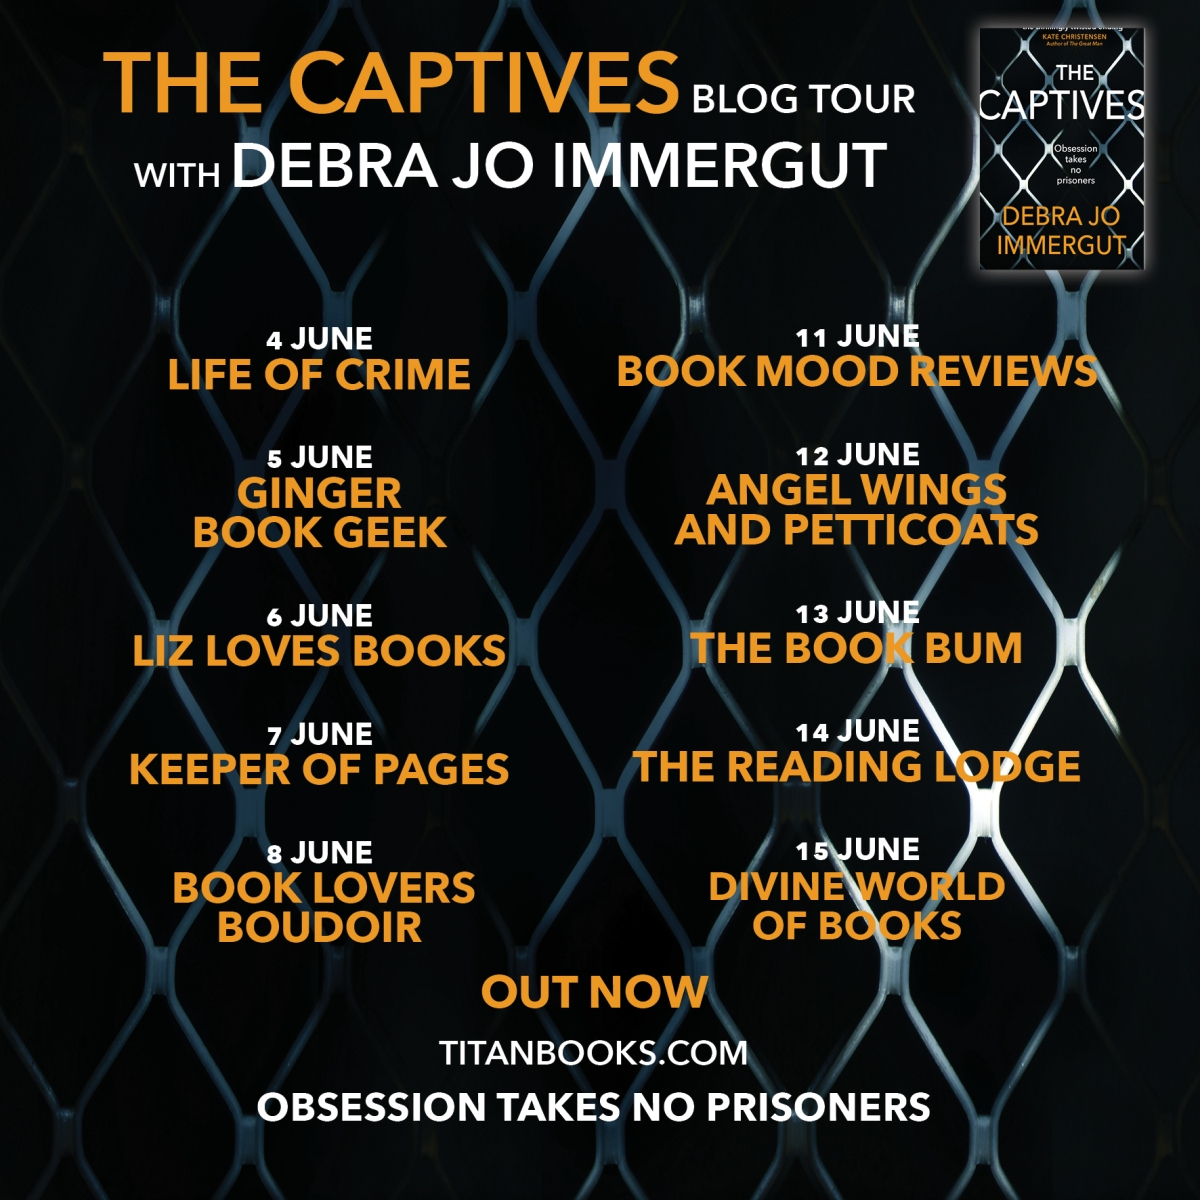 Blog Tour | Book Extract: The Captives by Debra Jo Immergut